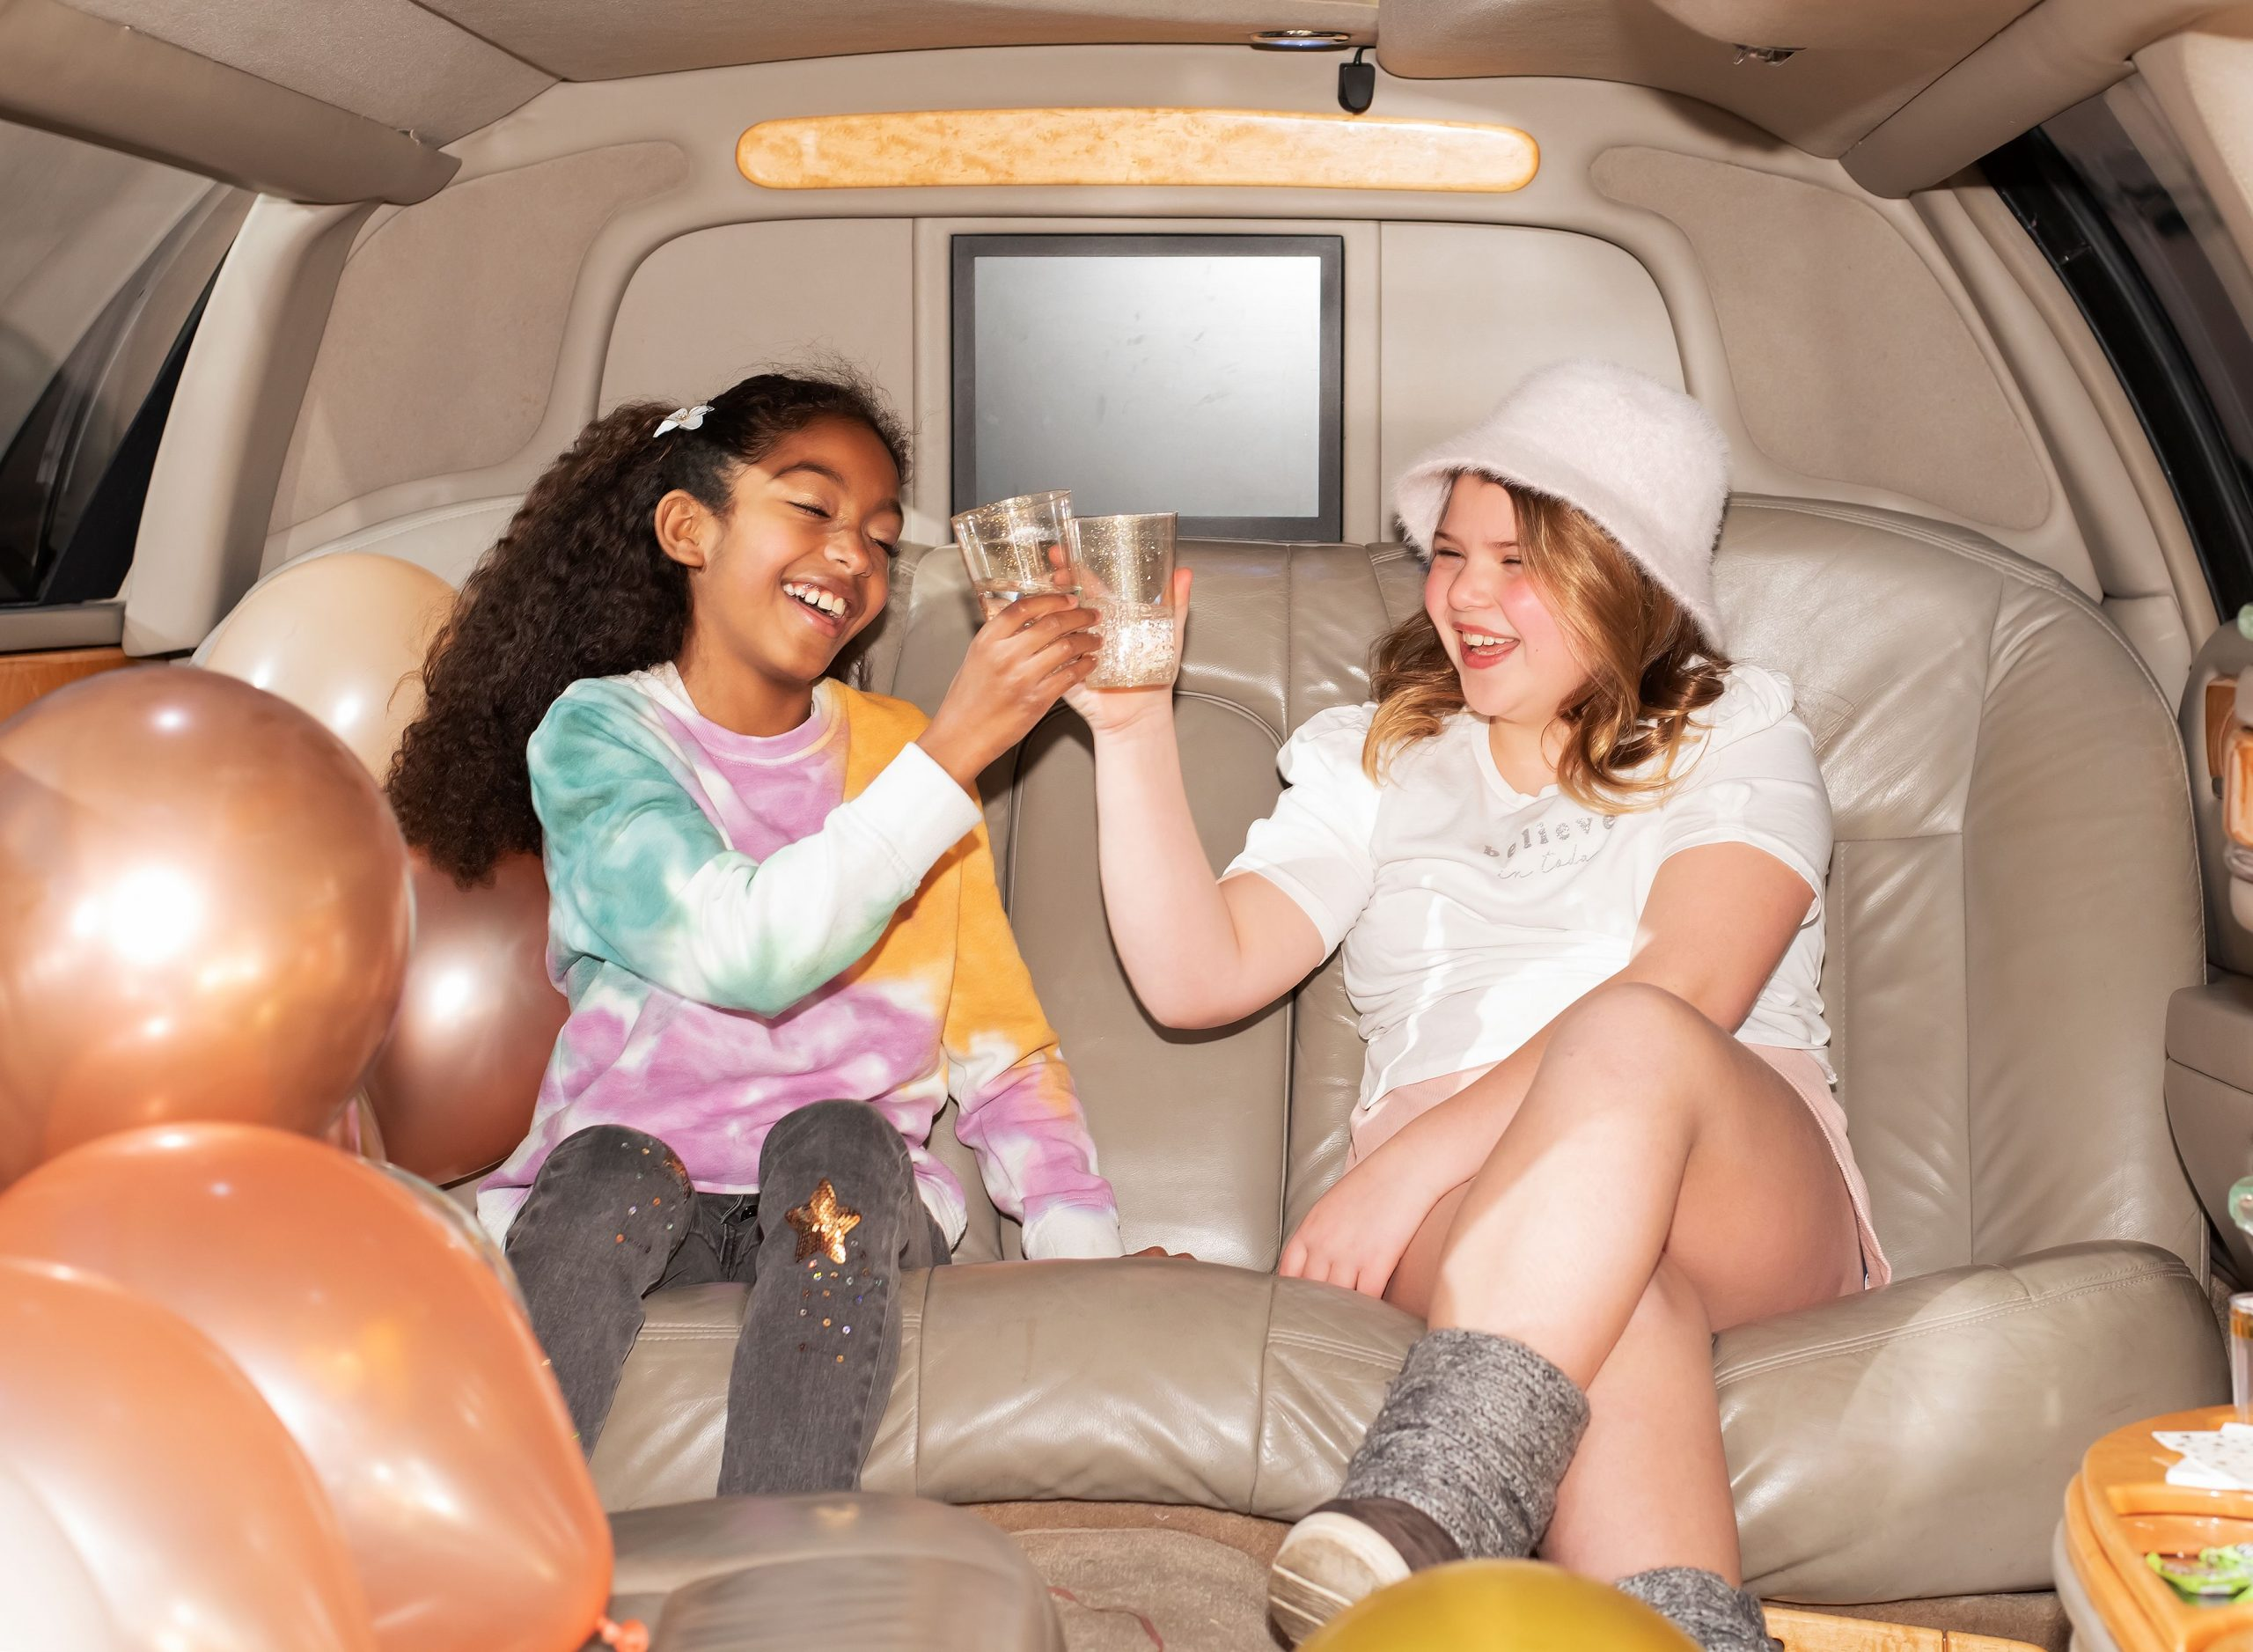 Girls sitting inside of limo before party